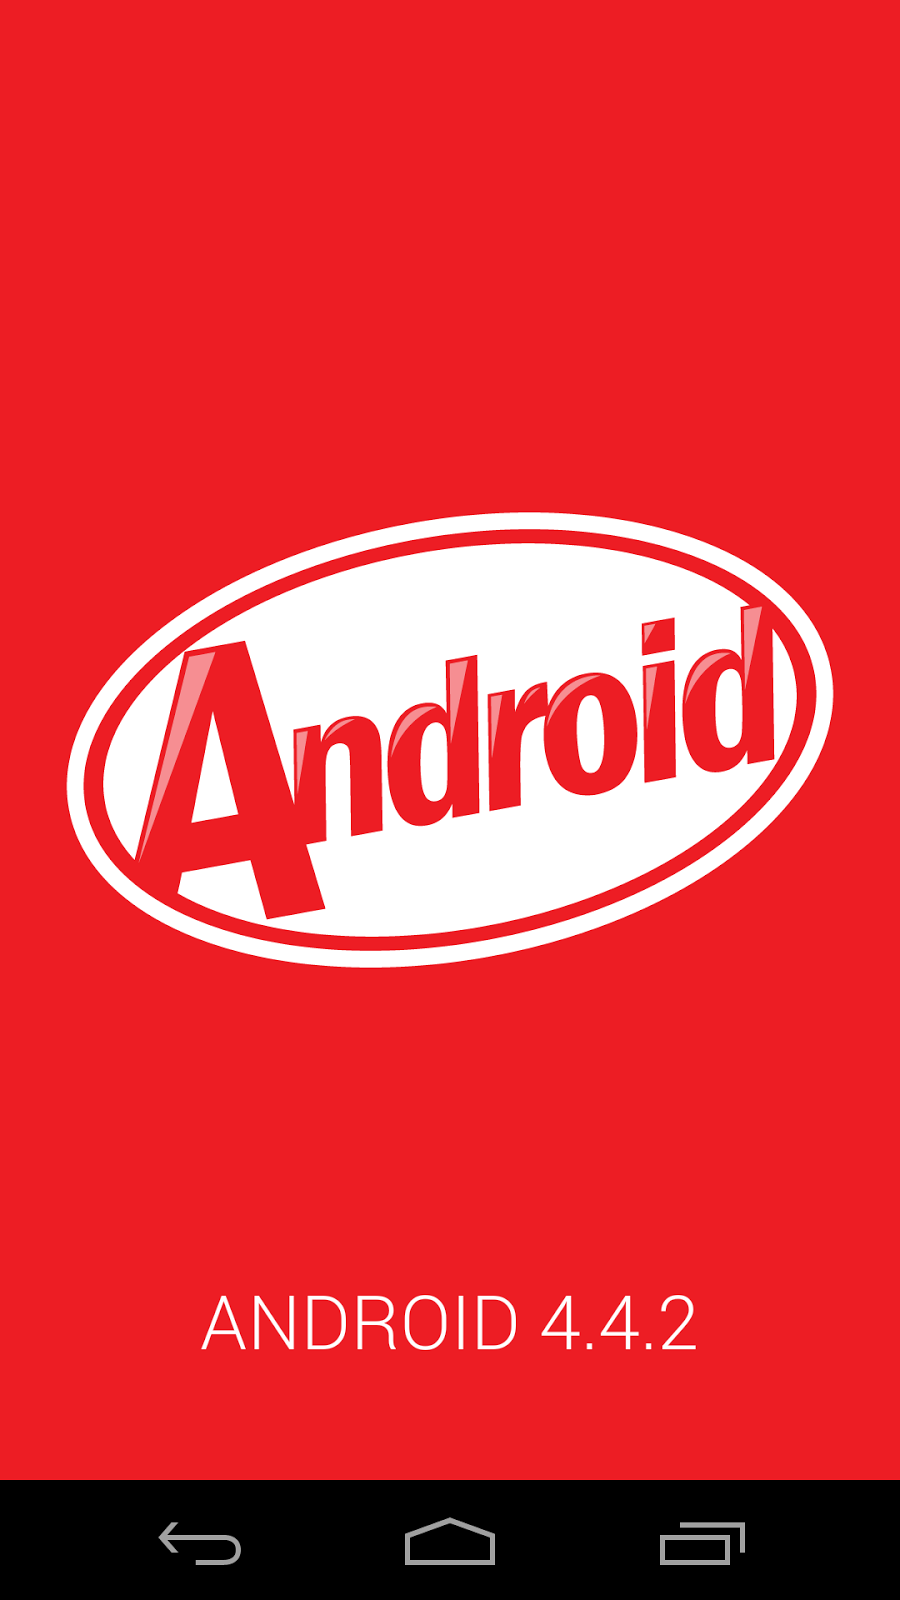 Google+LG+Nexus+5+Android+KitKat+Review+Handson+Detailed+Benchmark++%252810%2529.png